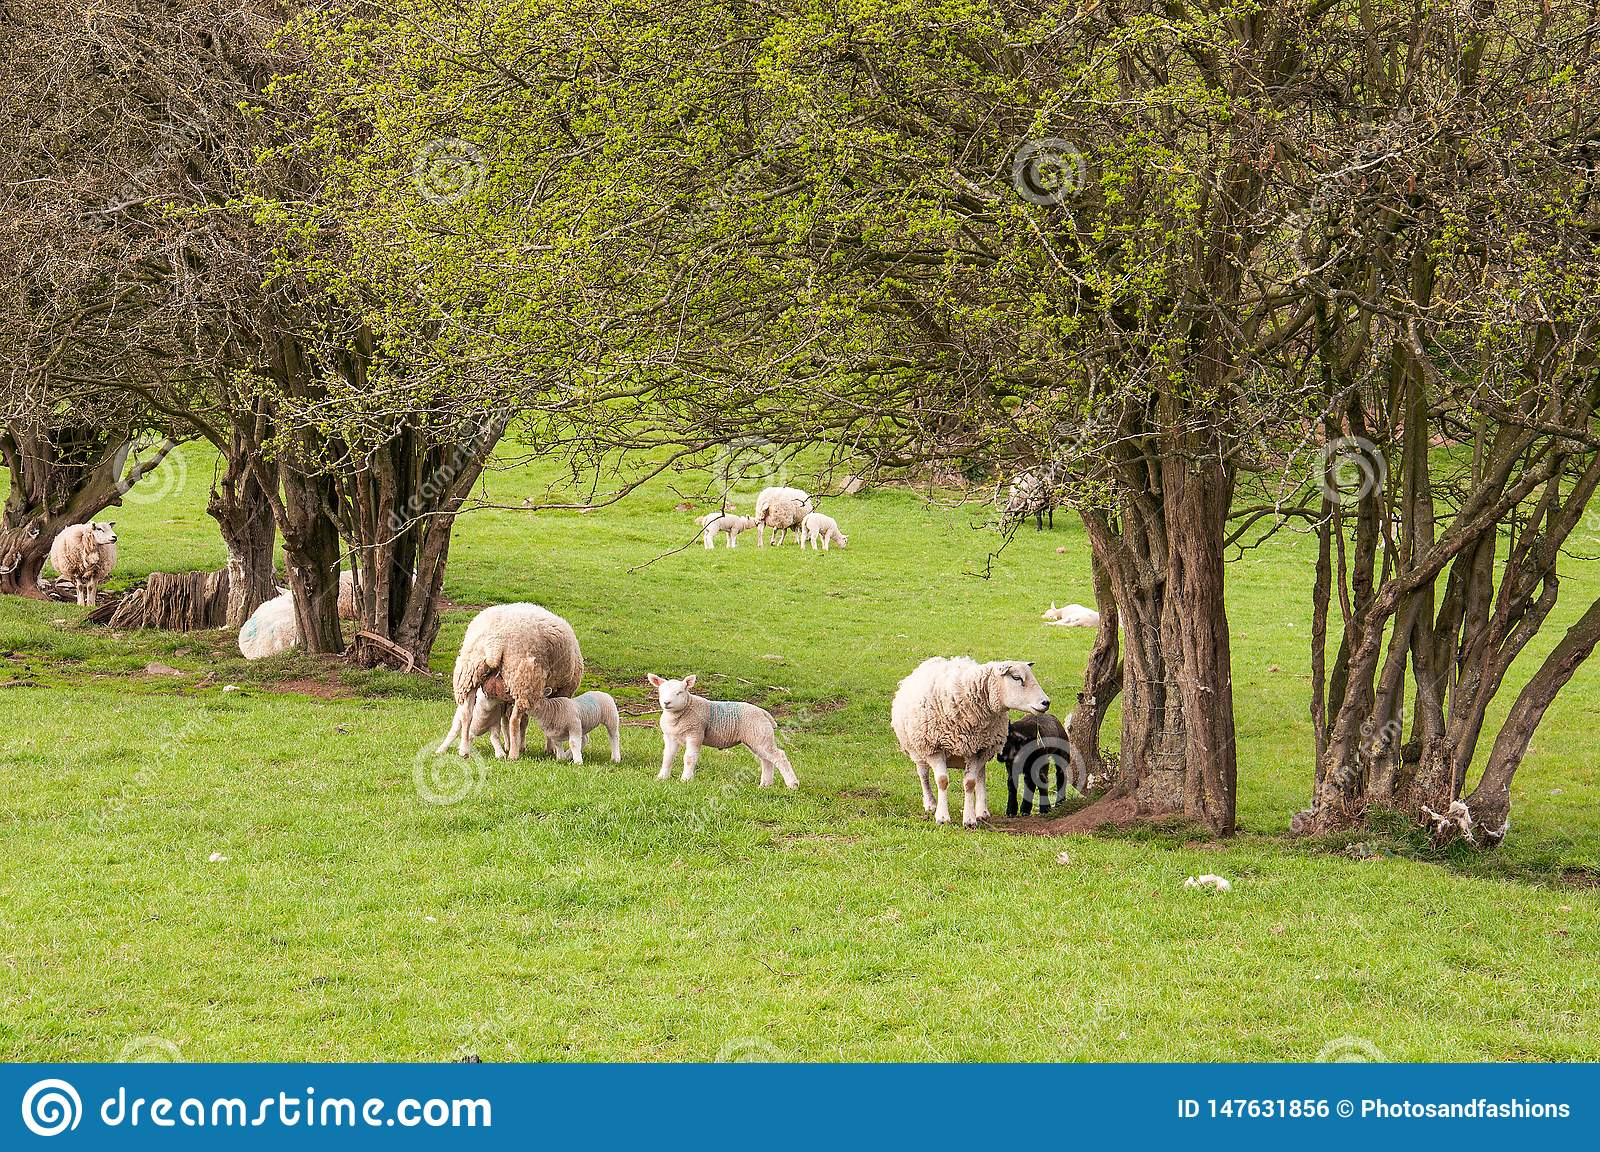 Sheep and young lambs in a springtime meadow in the English countryside.